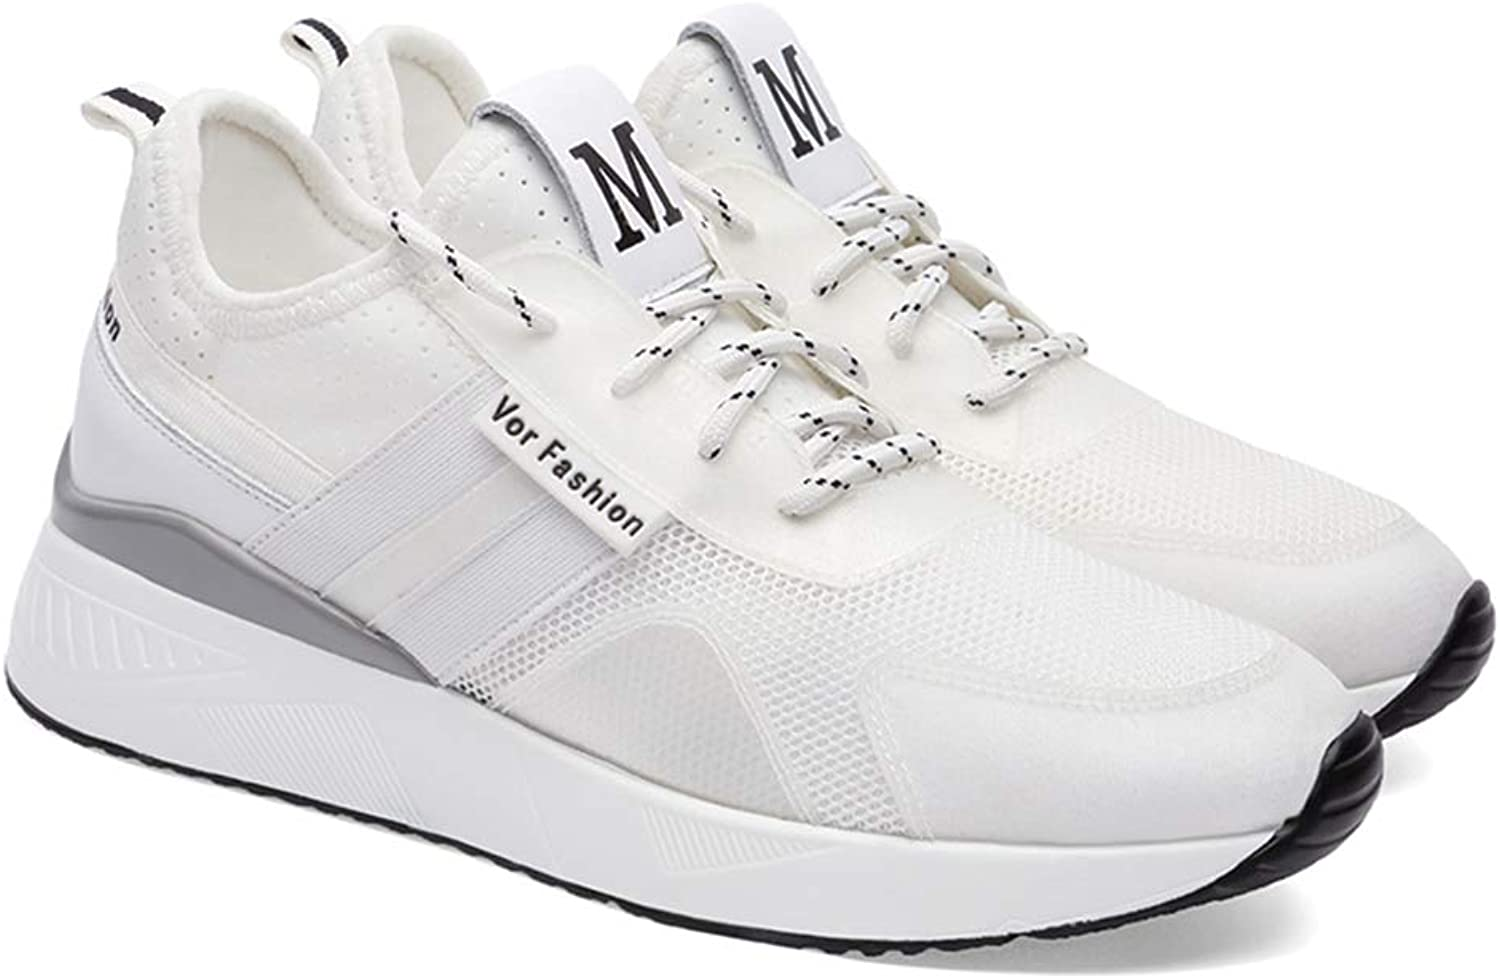 Zarbrina Women's Platform Athletic Casual Mesh Comfy Walking Sneakers - Breathable Increased Height shoes